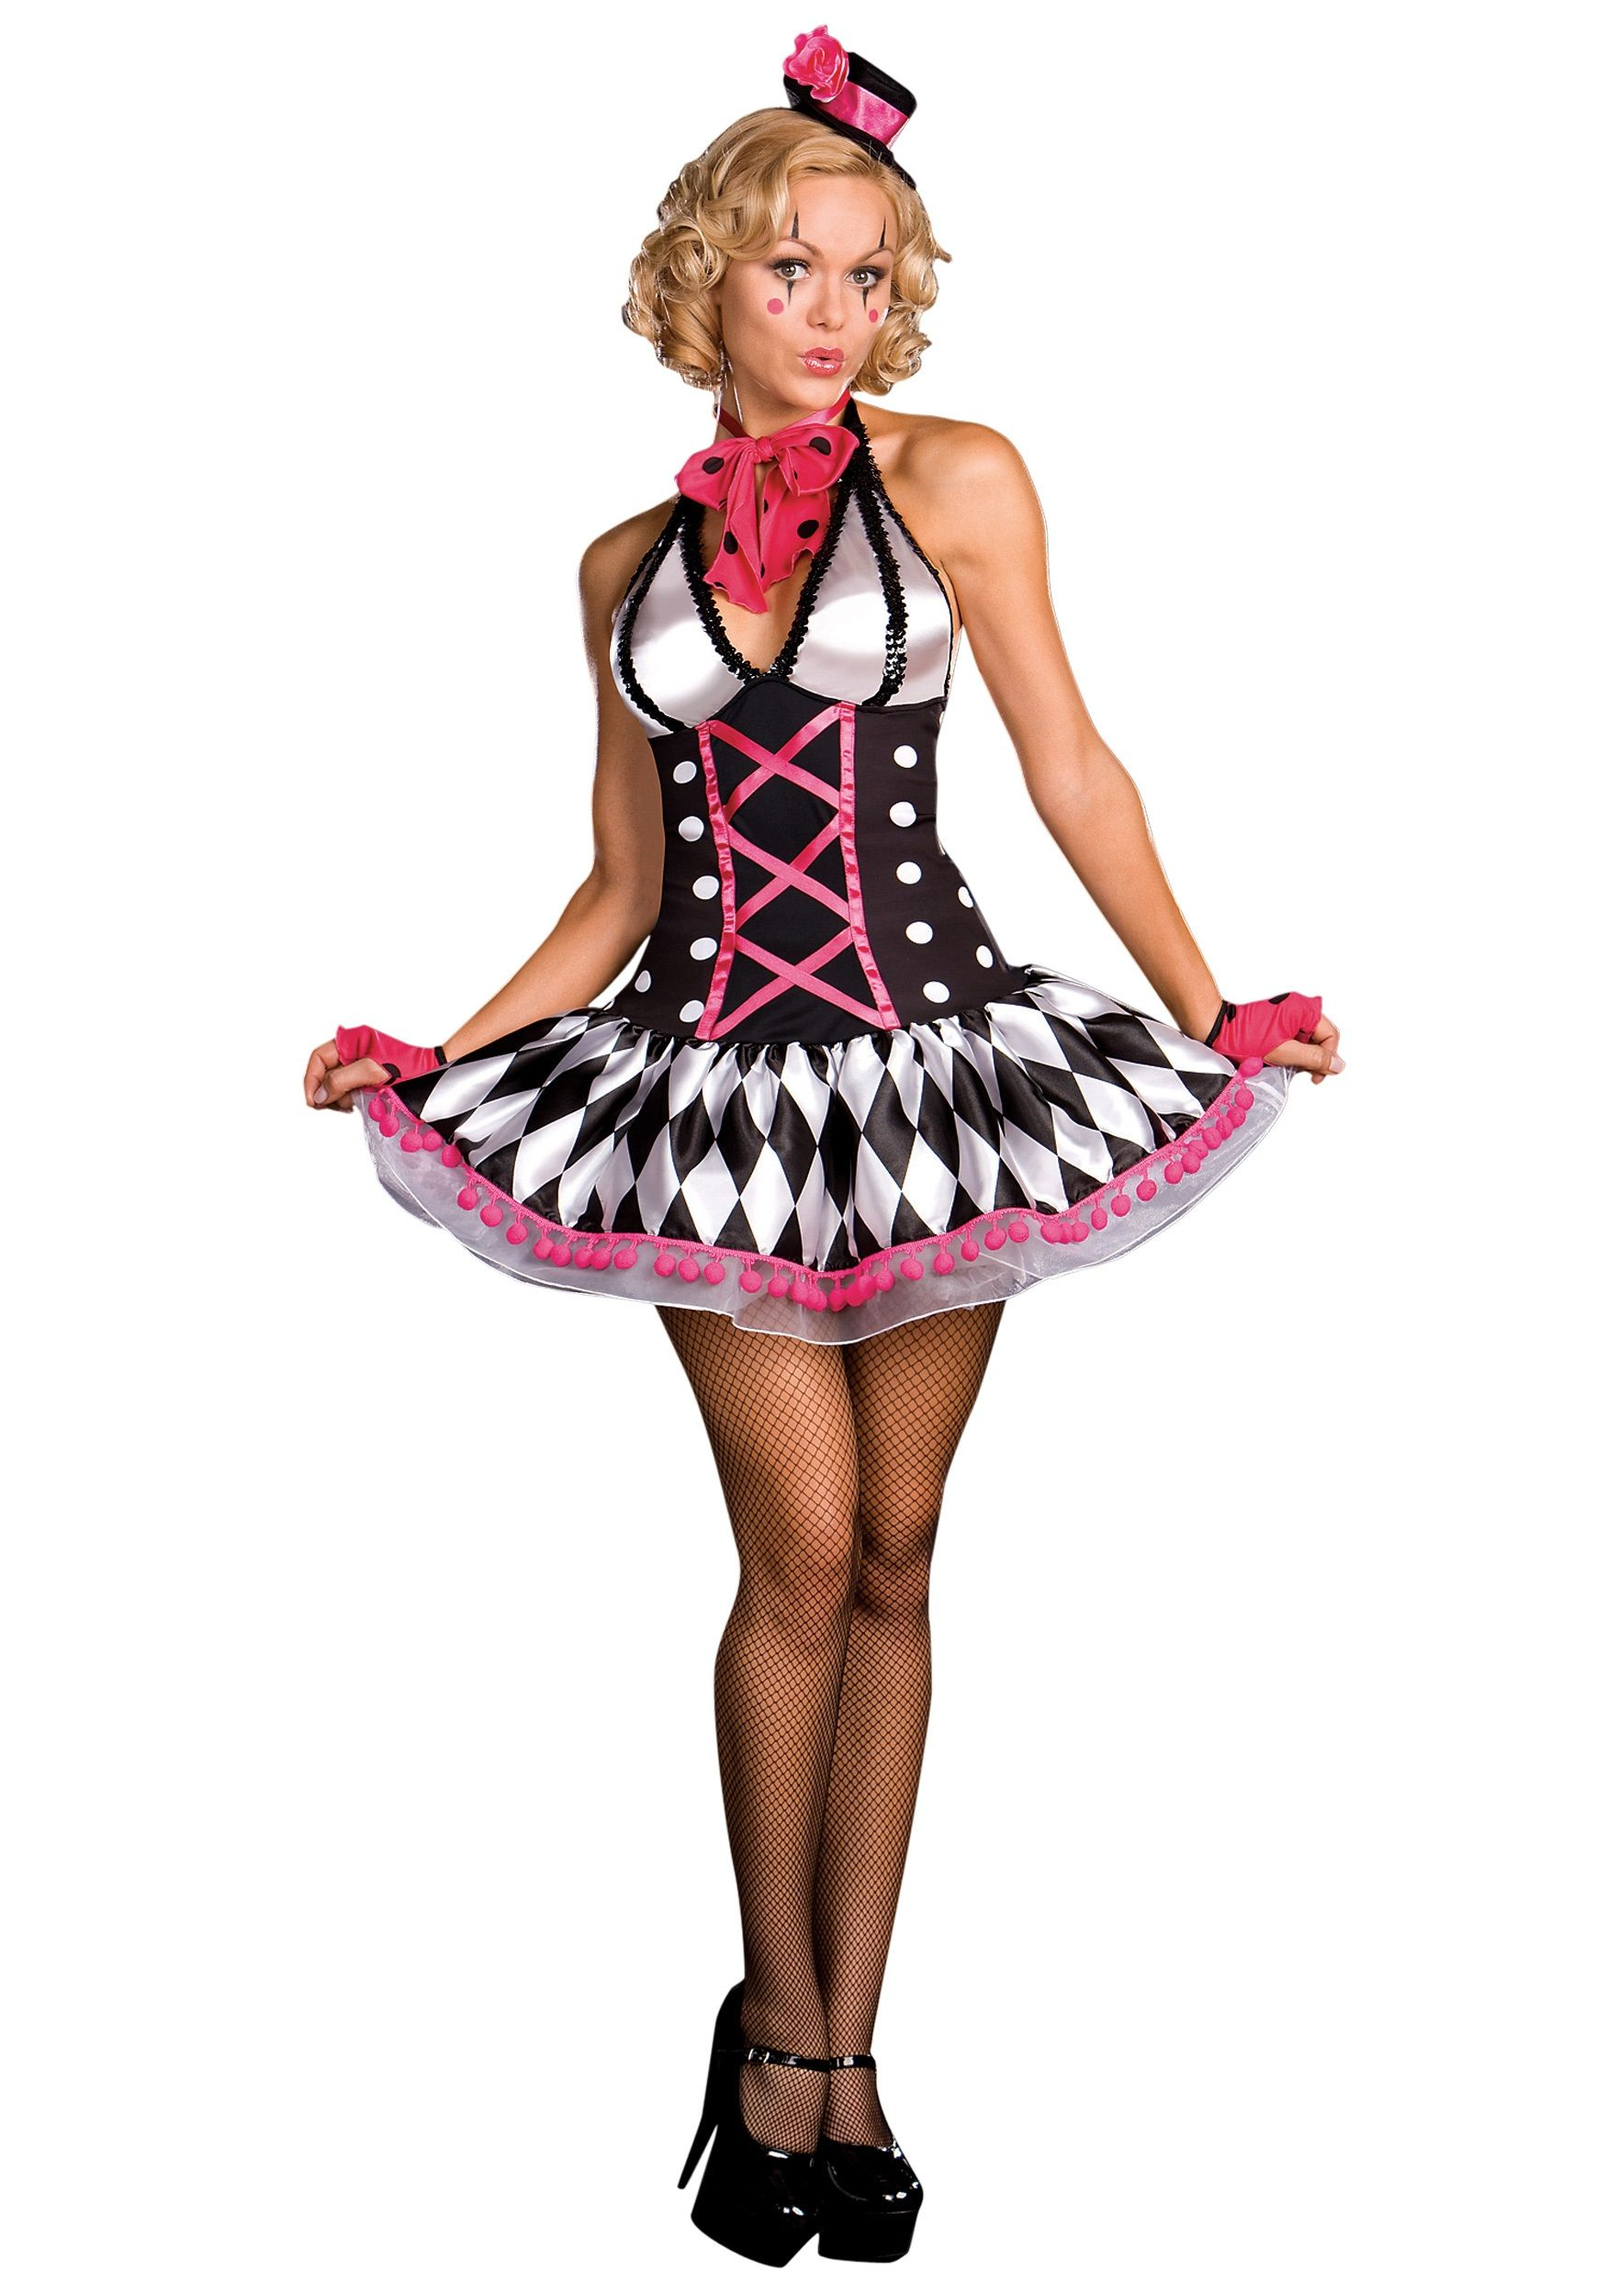 clown costumes for women | Home Halloween Costume Ideas Funny ...